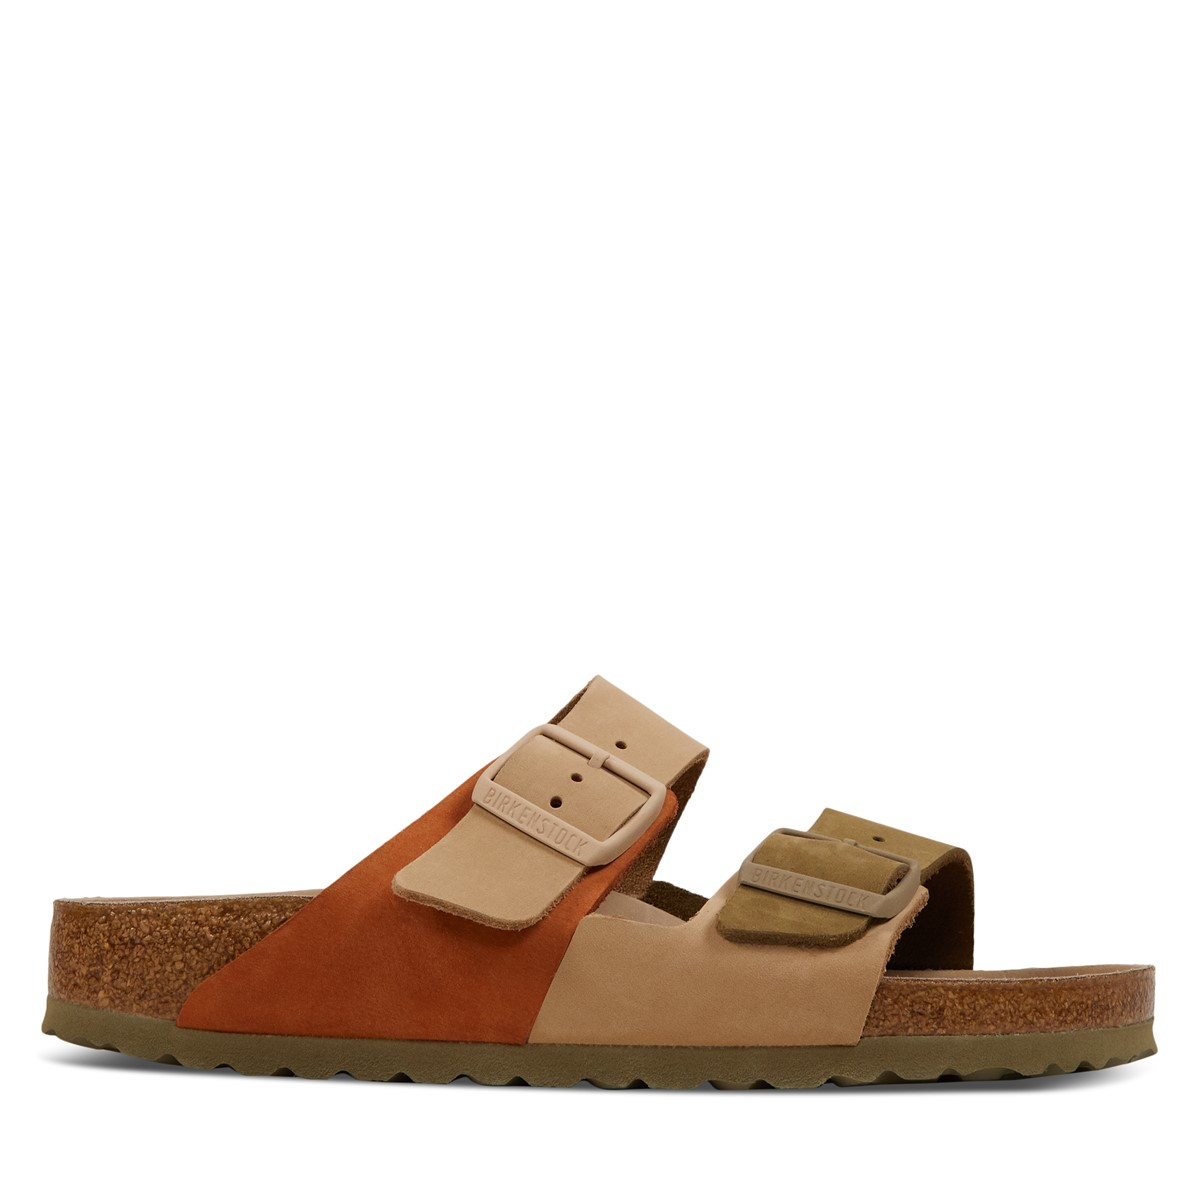 Women's Arizona Slipt HEX Sandals in Beige/Khaki